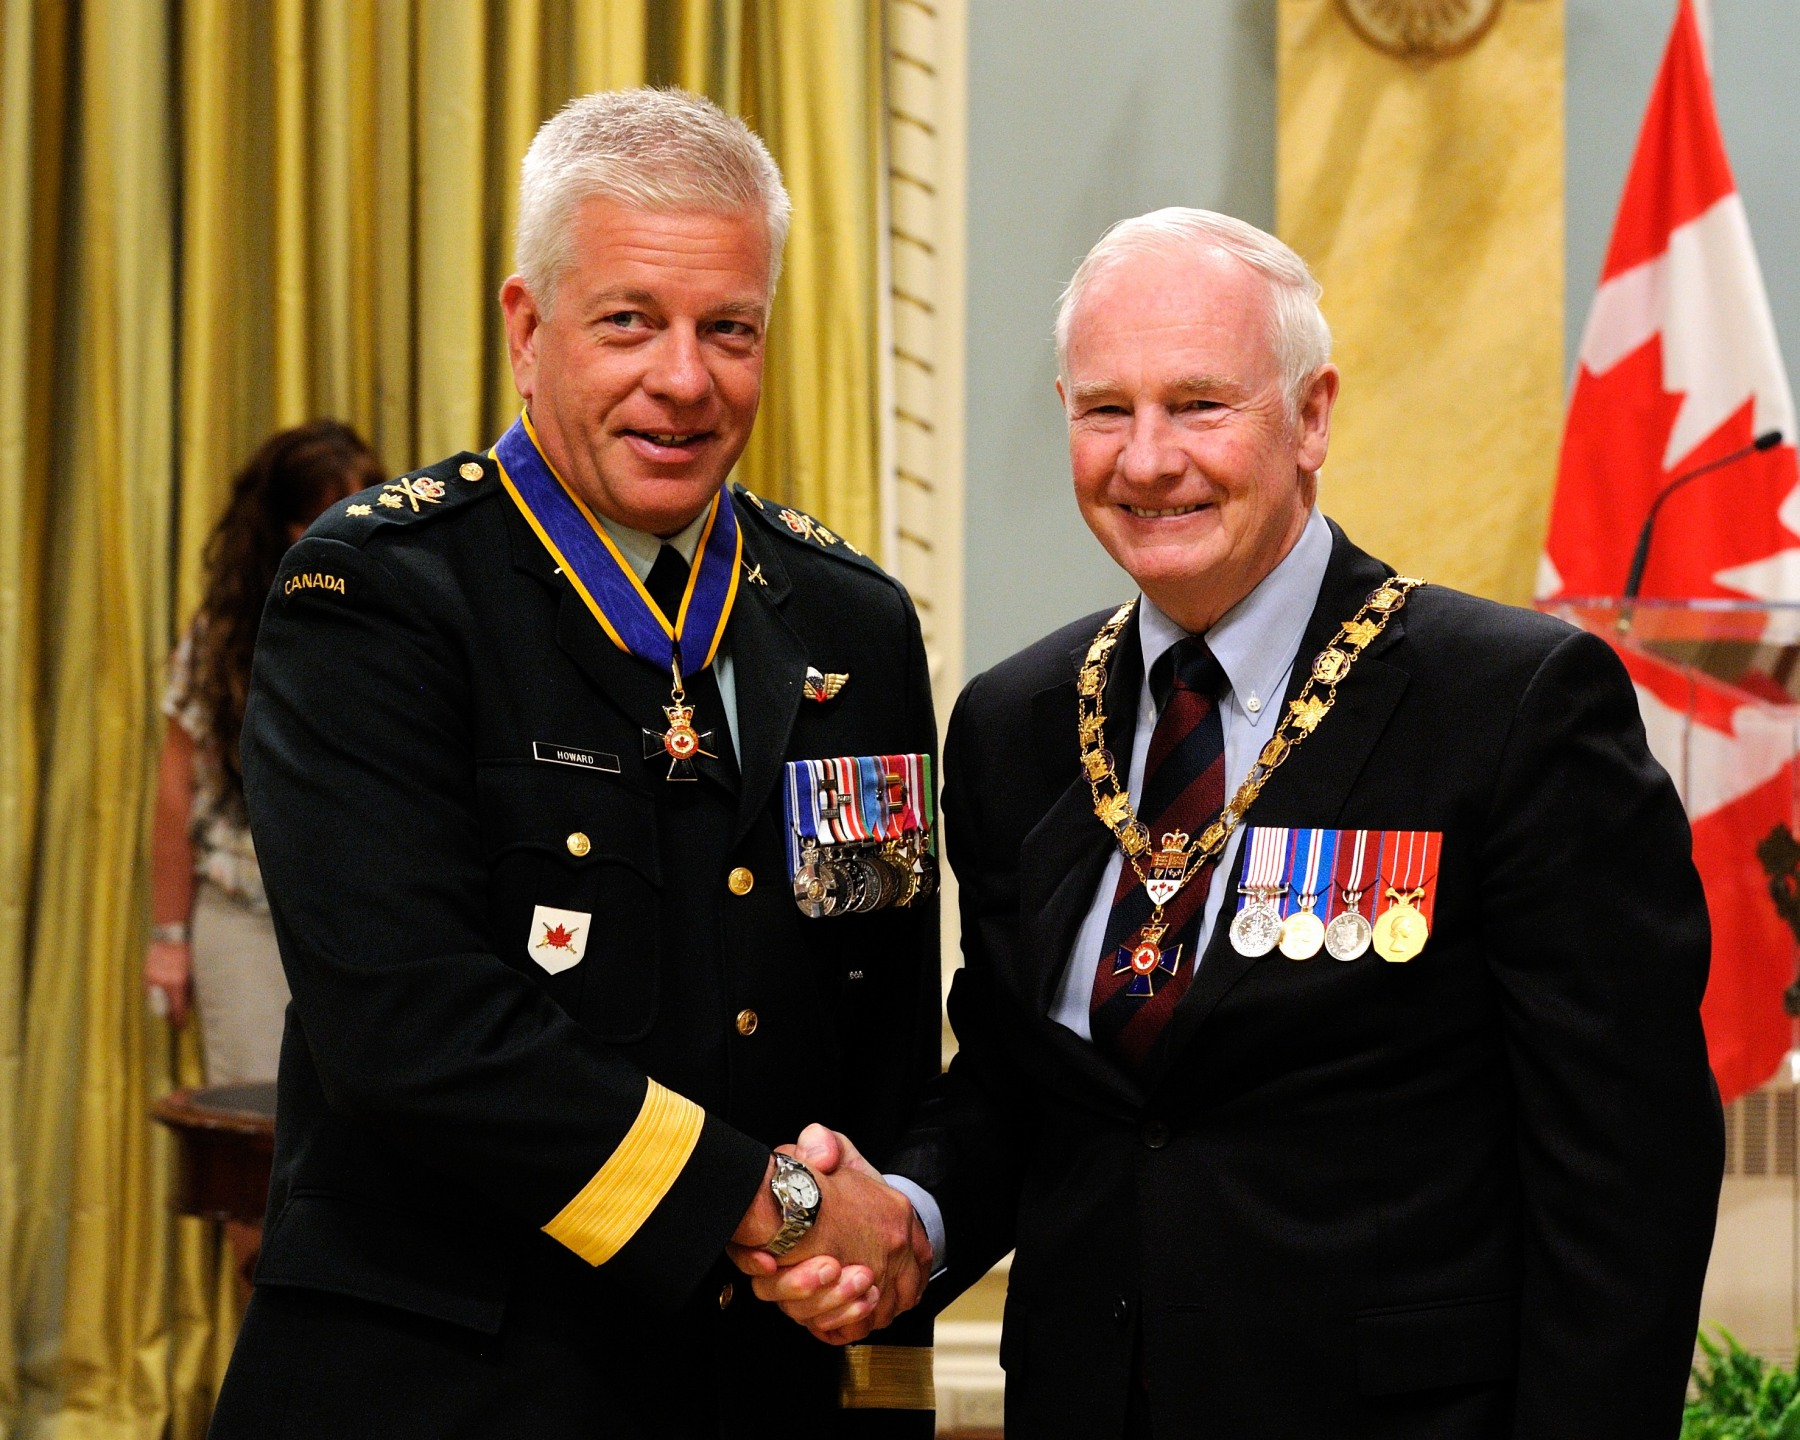 His Excellency presented the Order of Military Merit at the Commander level (C.M.M.) to Major-General Alan John Howard, C.M.M., M.S.M., C.D., Canadian Army Command, Ottawa, Ontario.